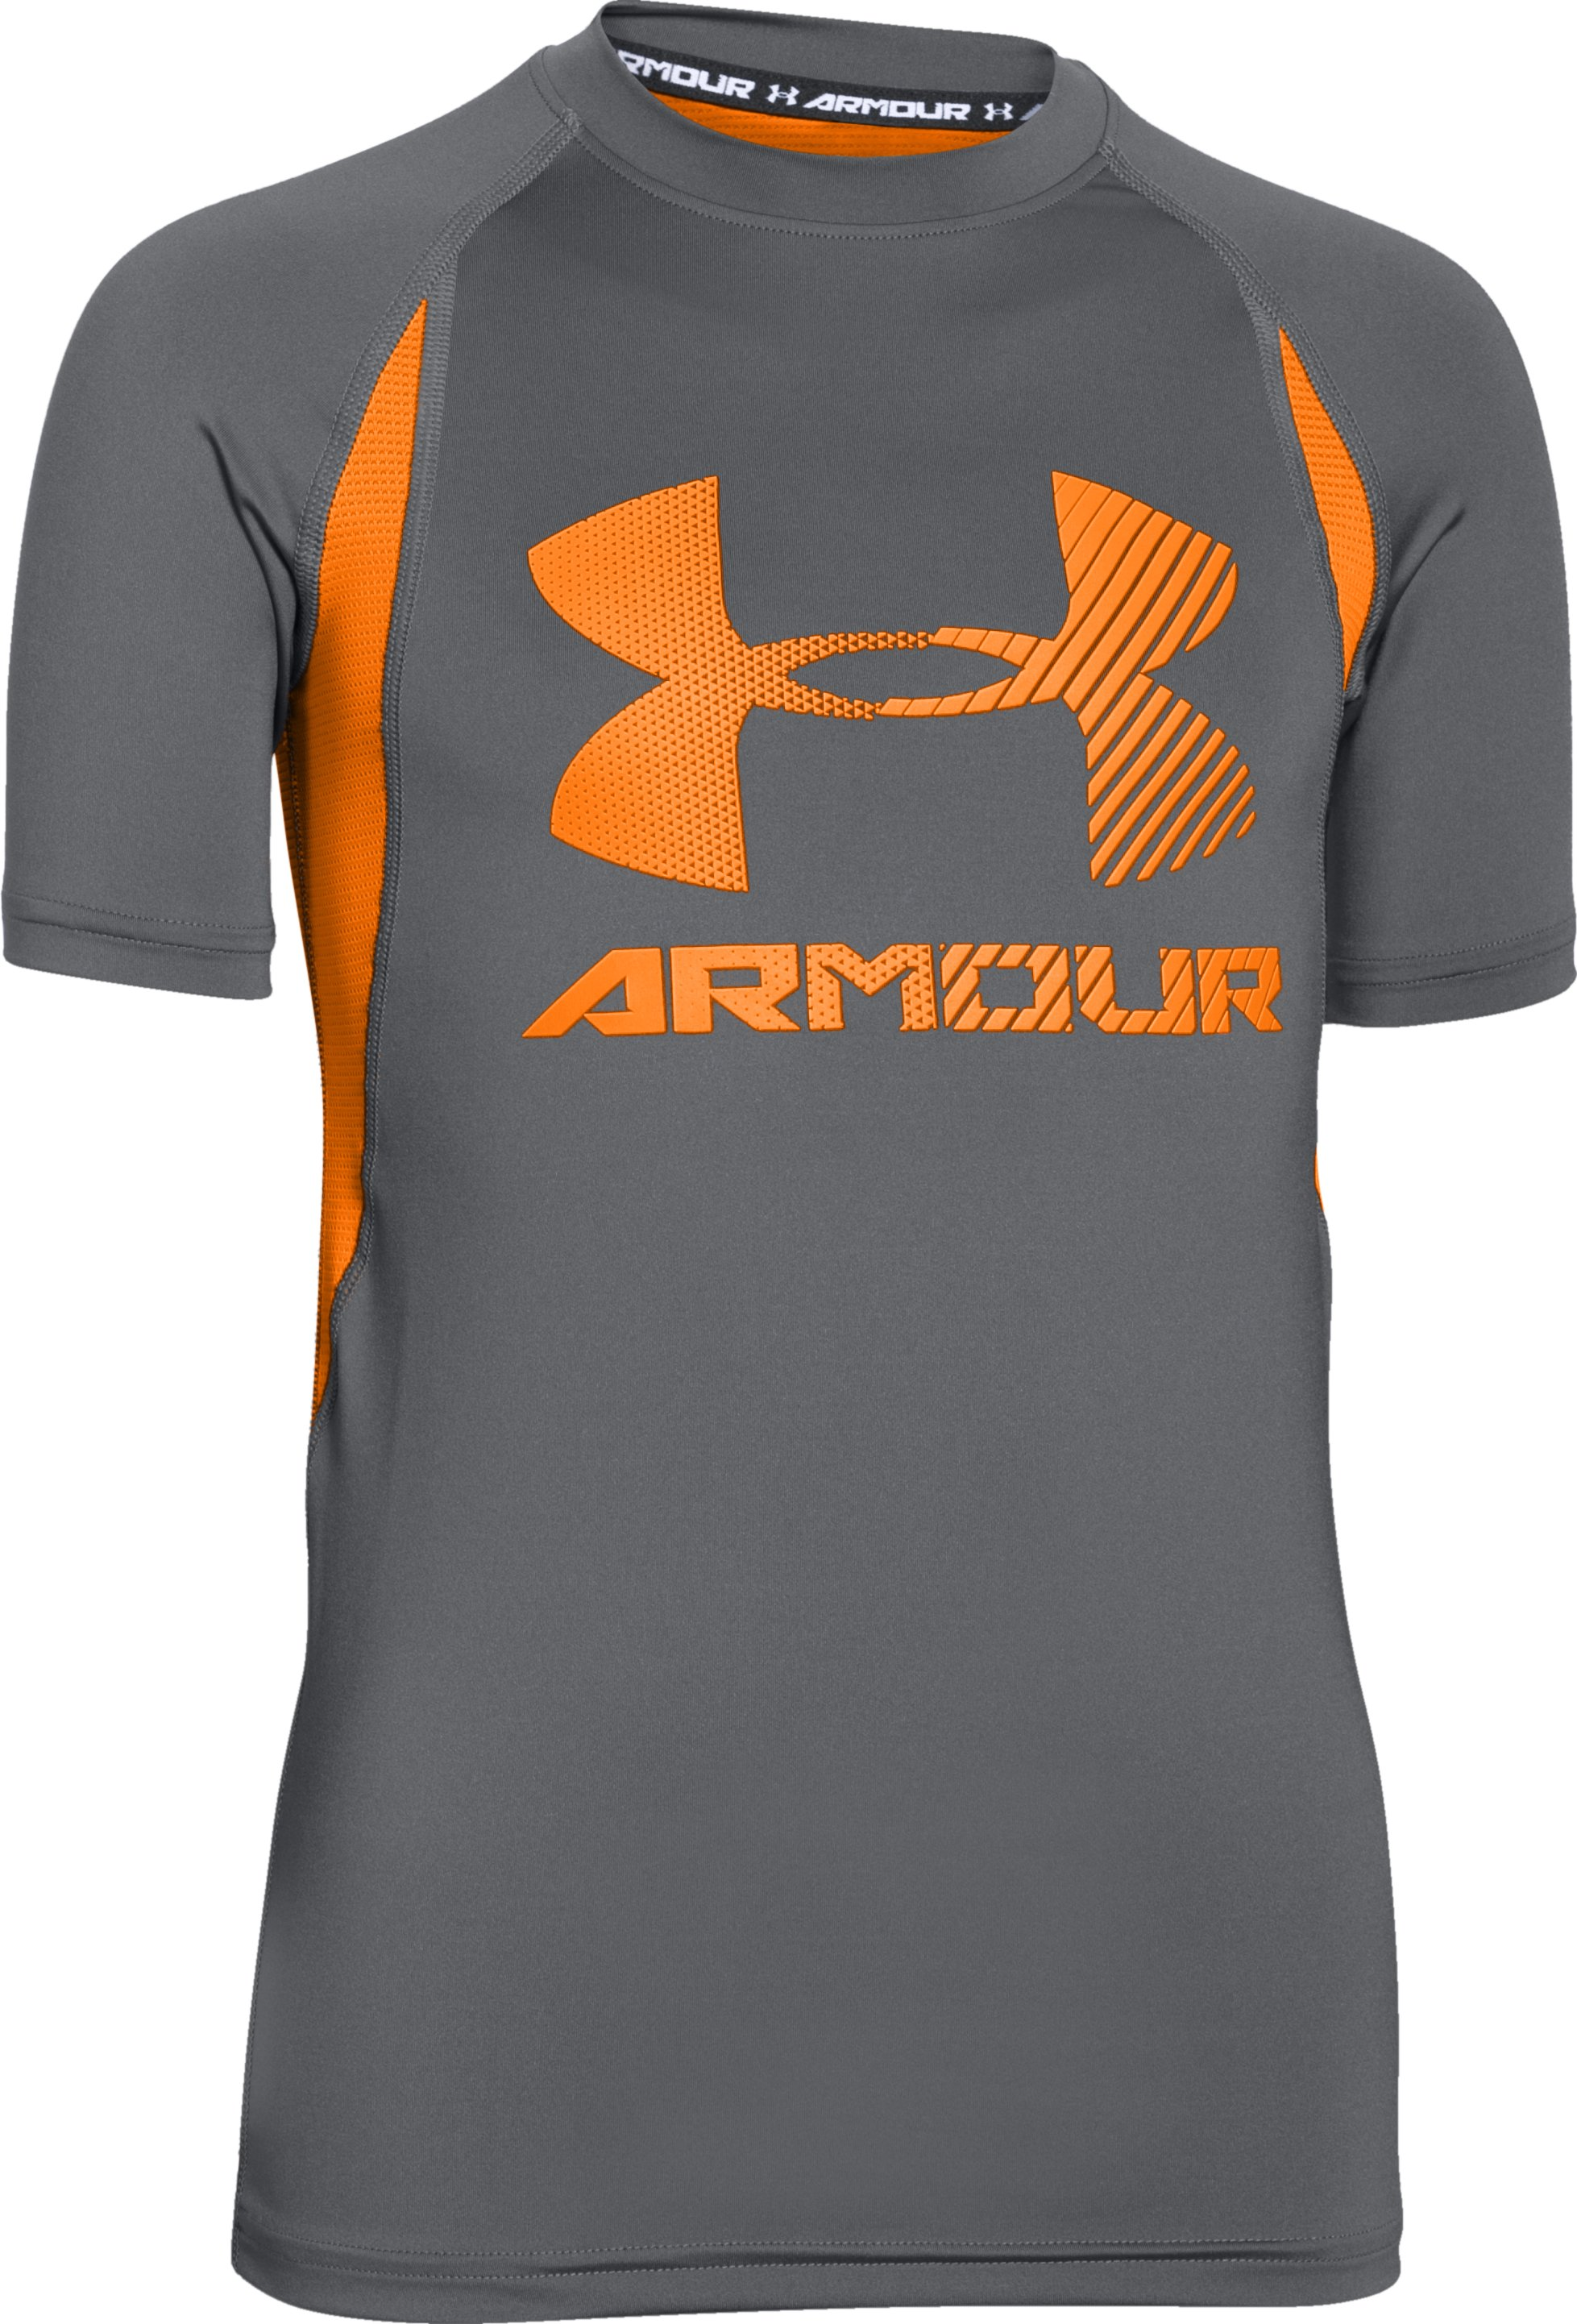 Boys' UA HeatGear® Armour Up Digi Fitted Short Sleeve Shirt, Graphite, zoomed image